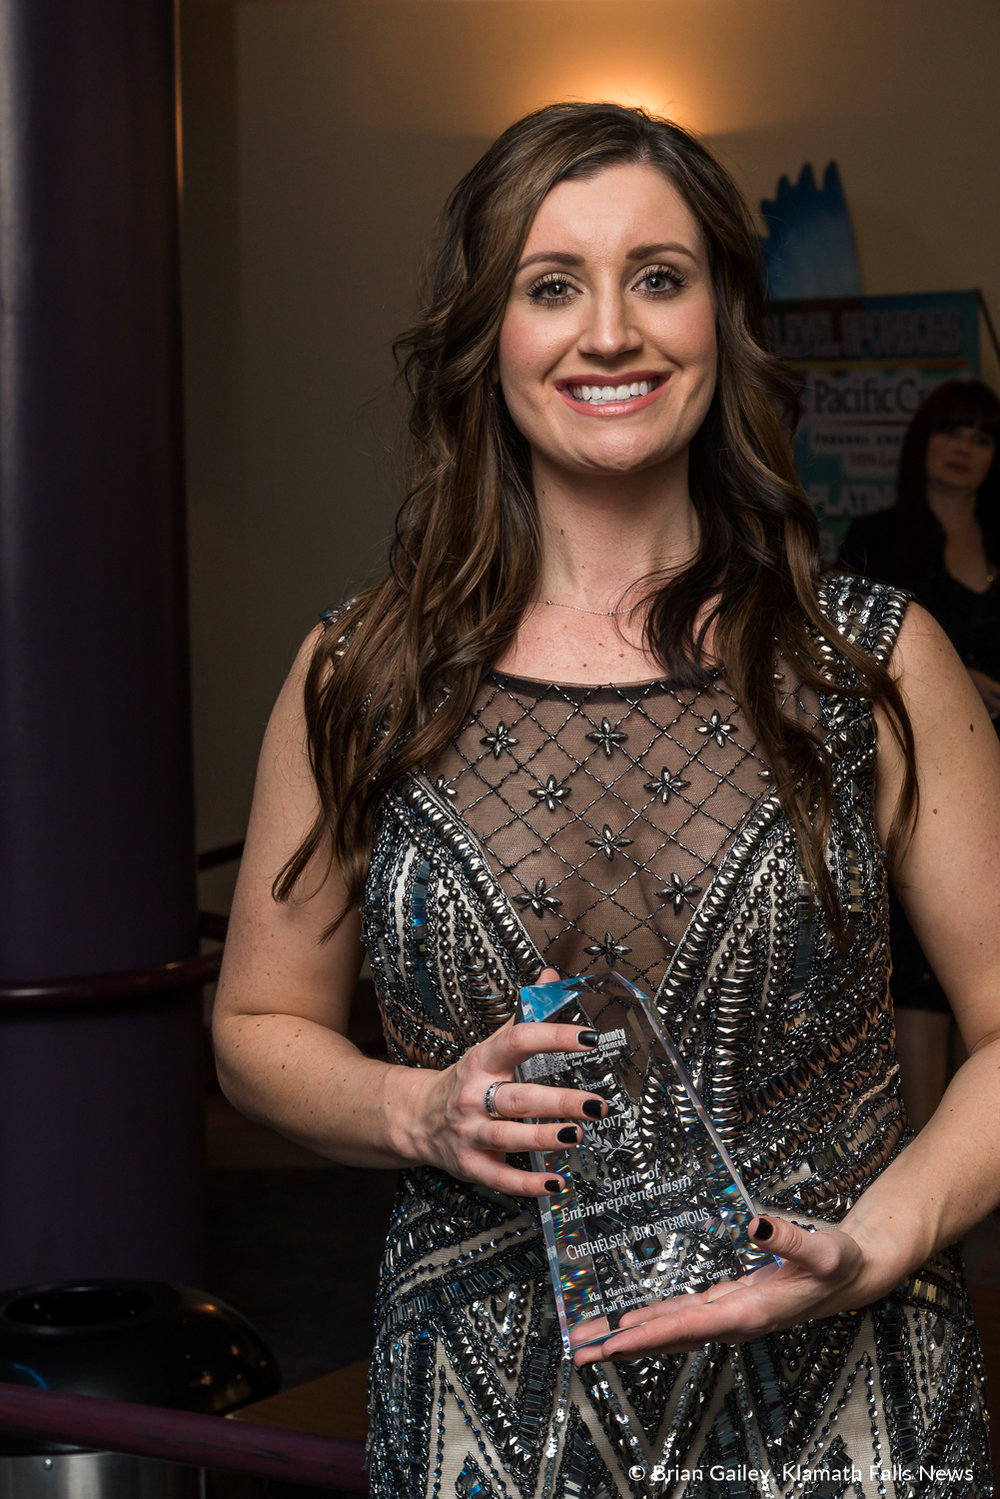 Chelsea Brosterhous stands with her award following the 97th Annual Chamber Gala Awards. (Brian Gailey)